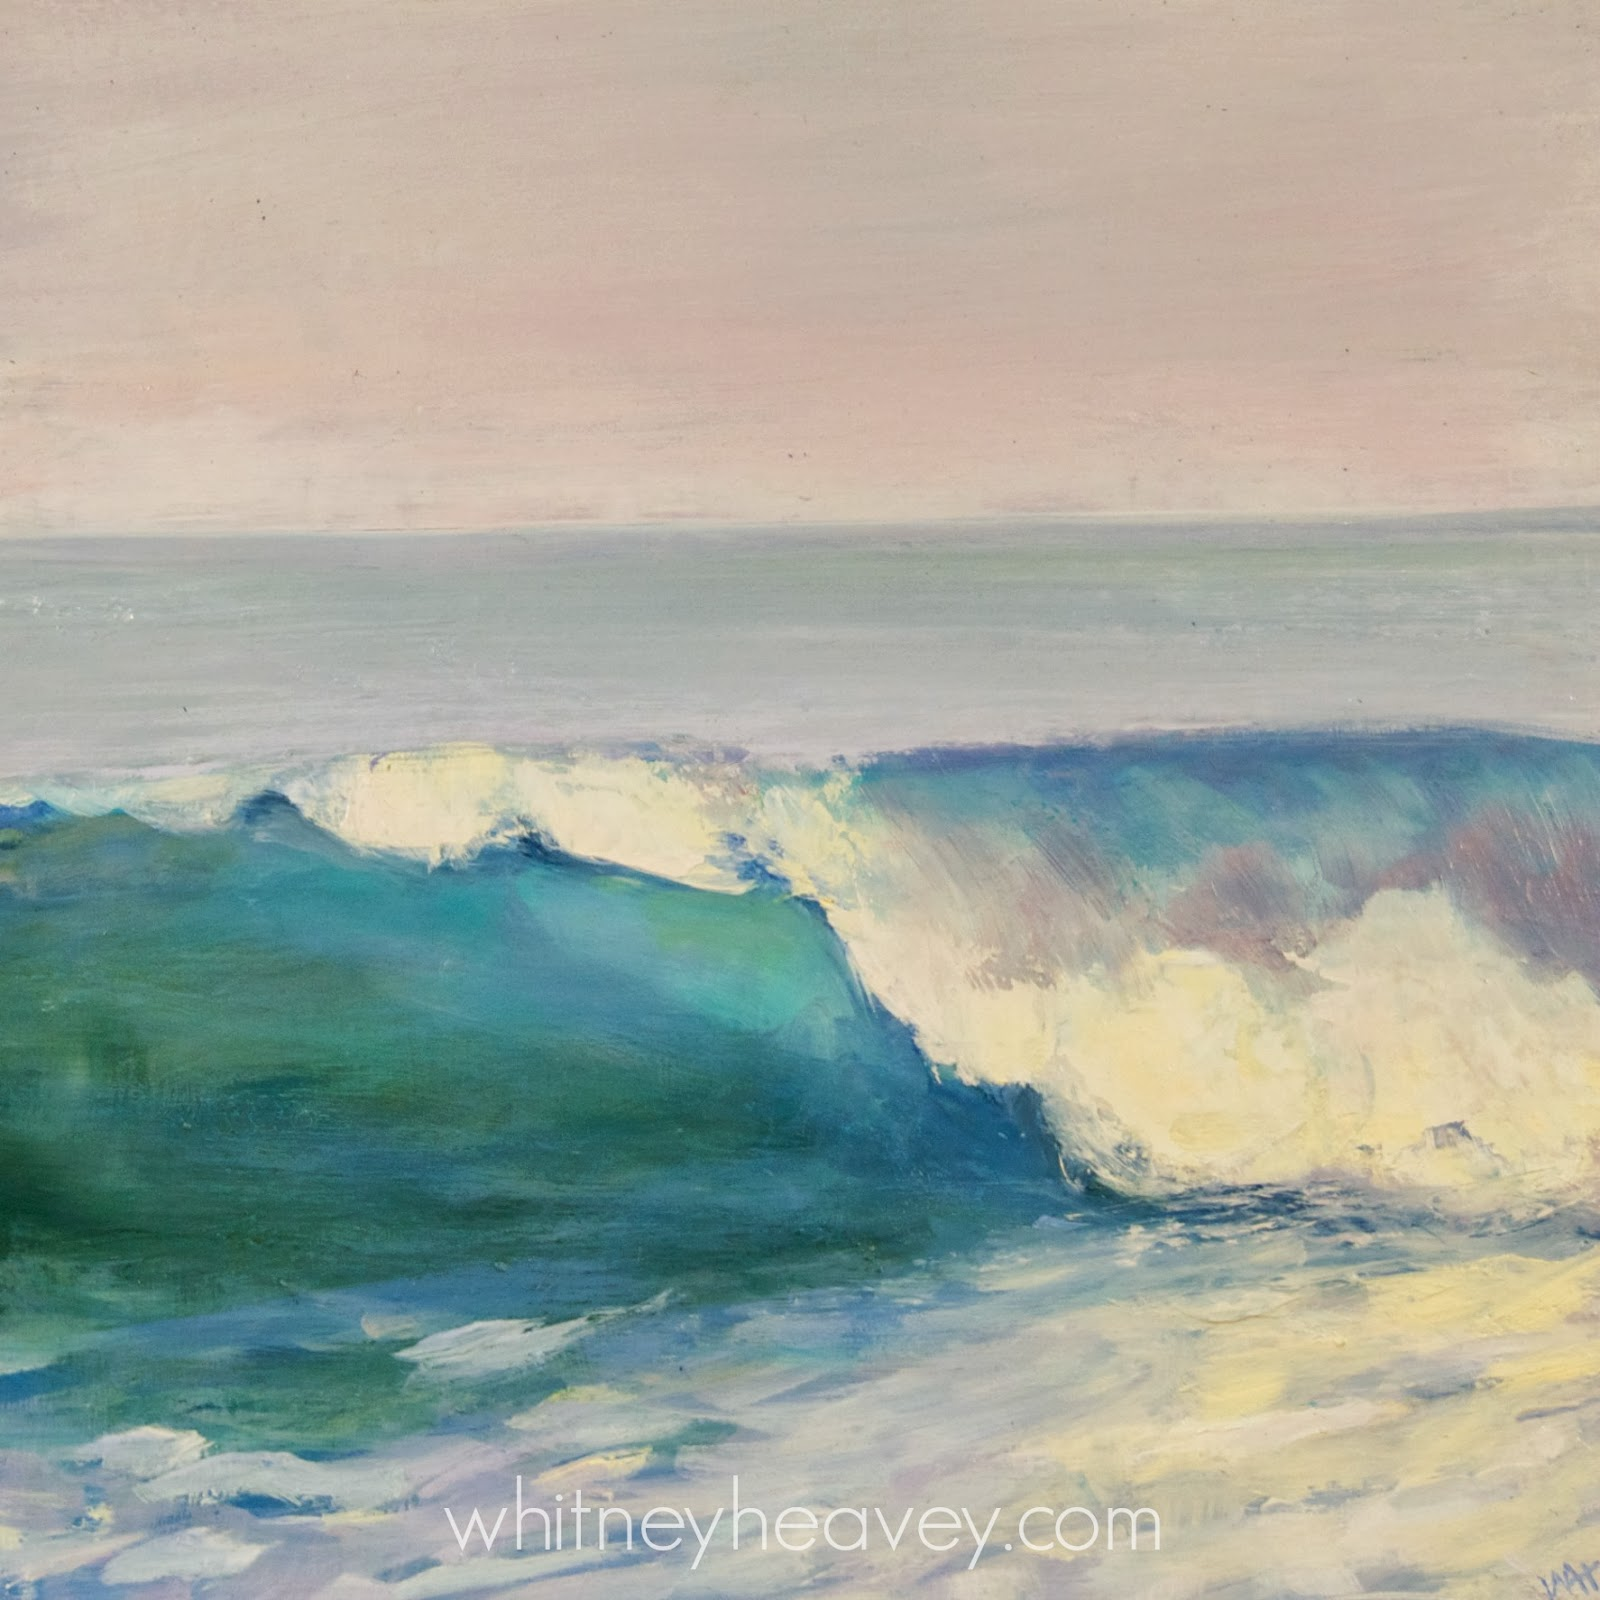 Oil painting of a wave by Whitney Heavey